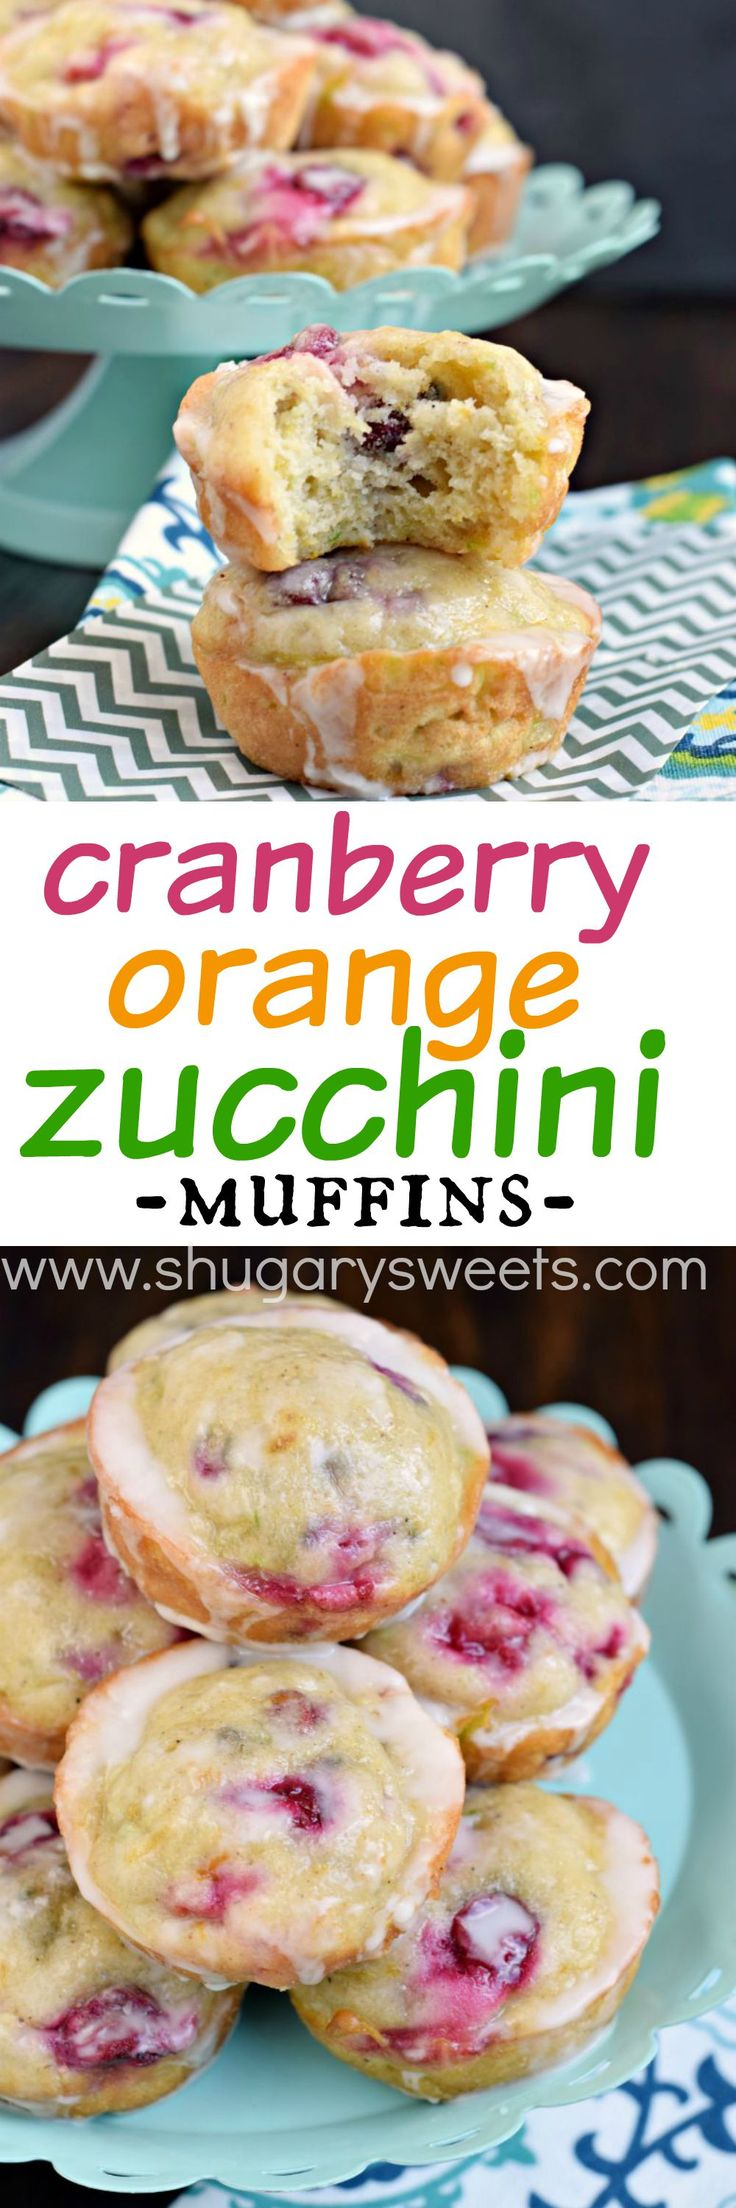 These Cranberry Orange Zucchini Muffins are packed with flavor! And that orange…